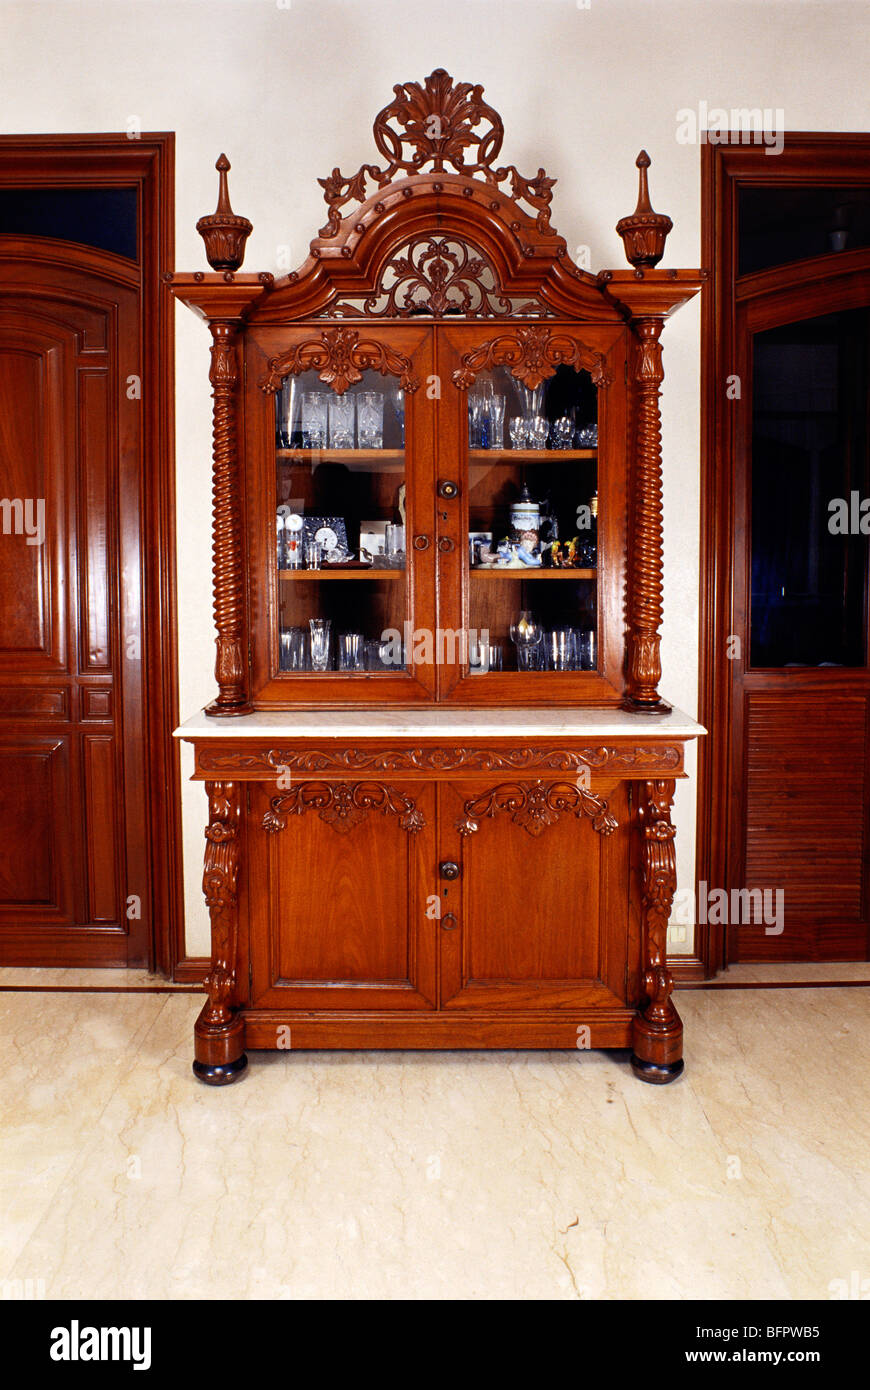 Hma 66470 Teak Wood Showcase Arrangement Living Room India Stock Photo Royalty Free Image